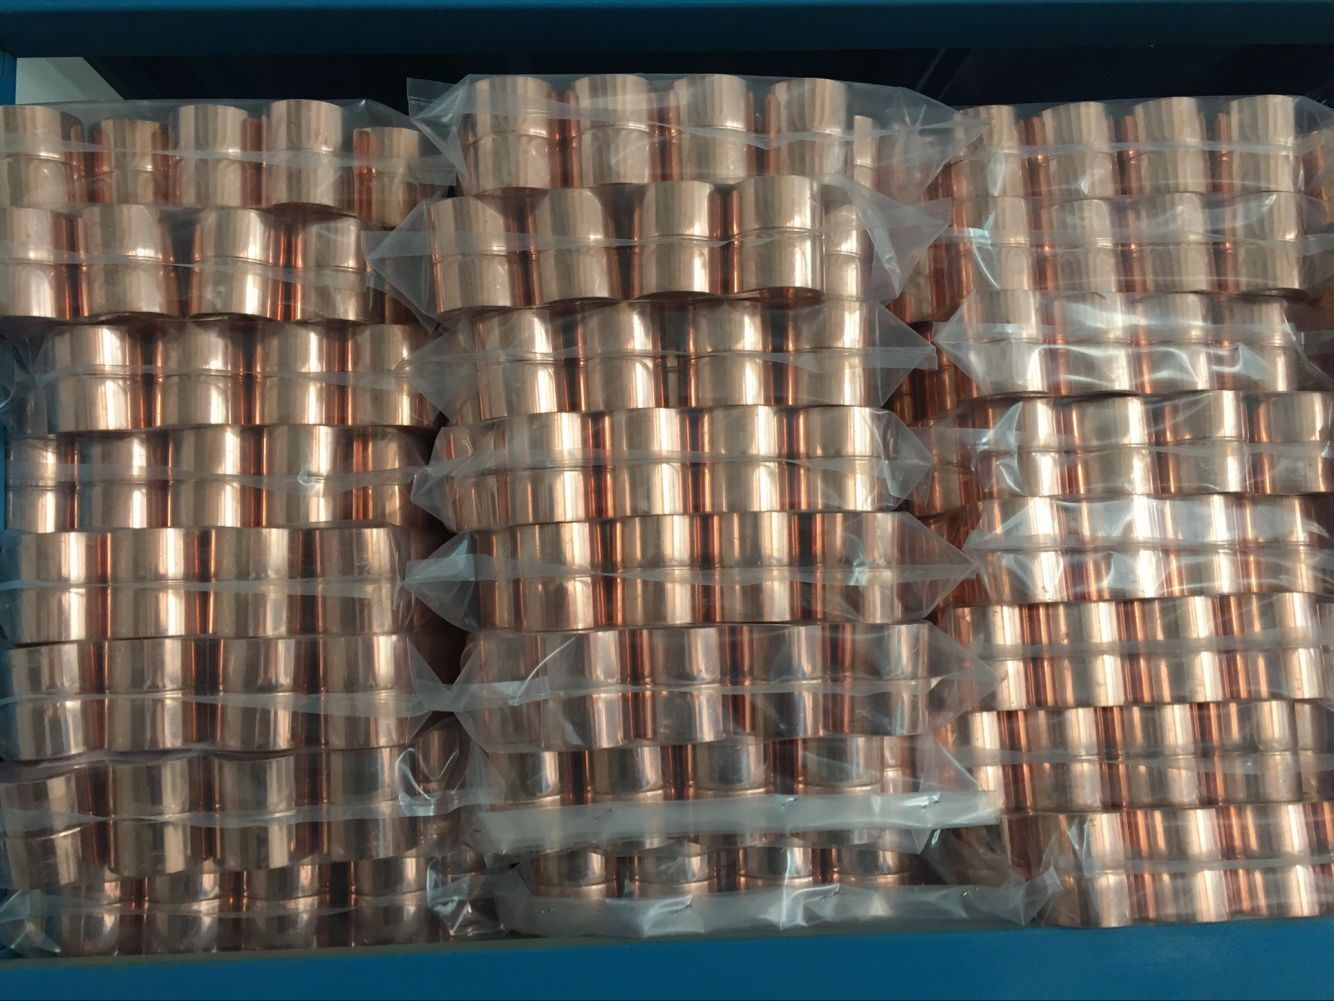 Copper Fittings for Refrigeration and Air Conditioning System